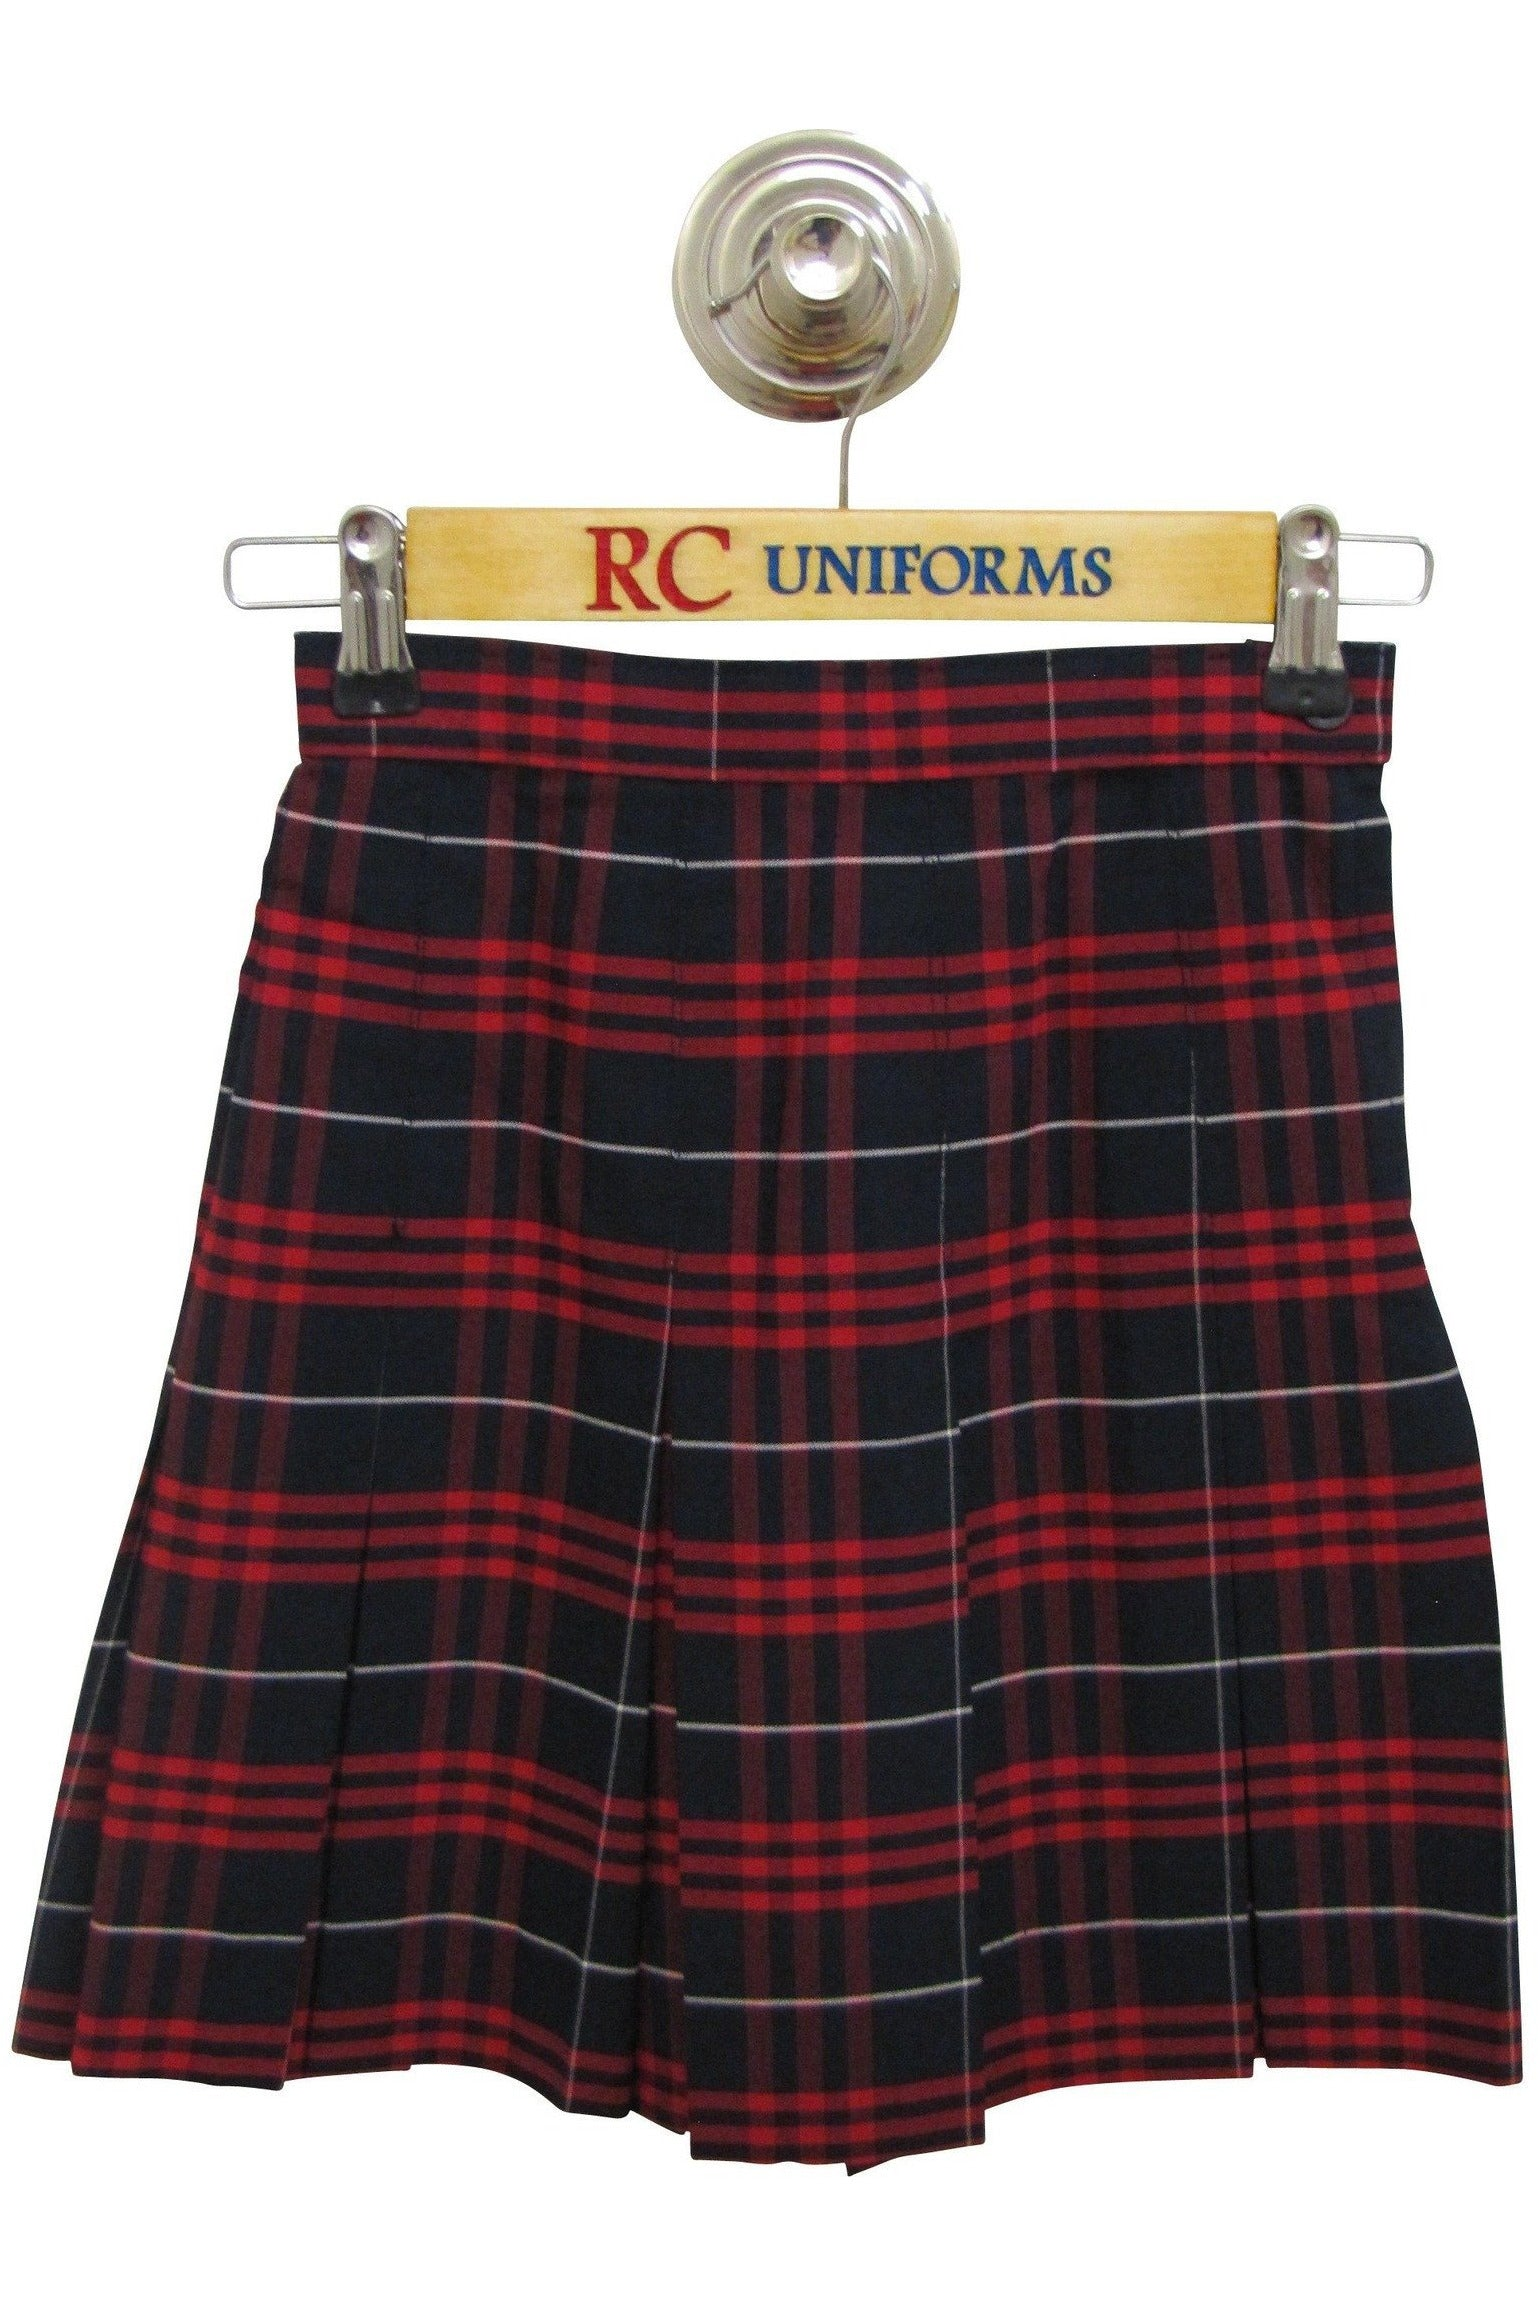 Plaid 37 Kick Pleat Skirt - RC Uniforms